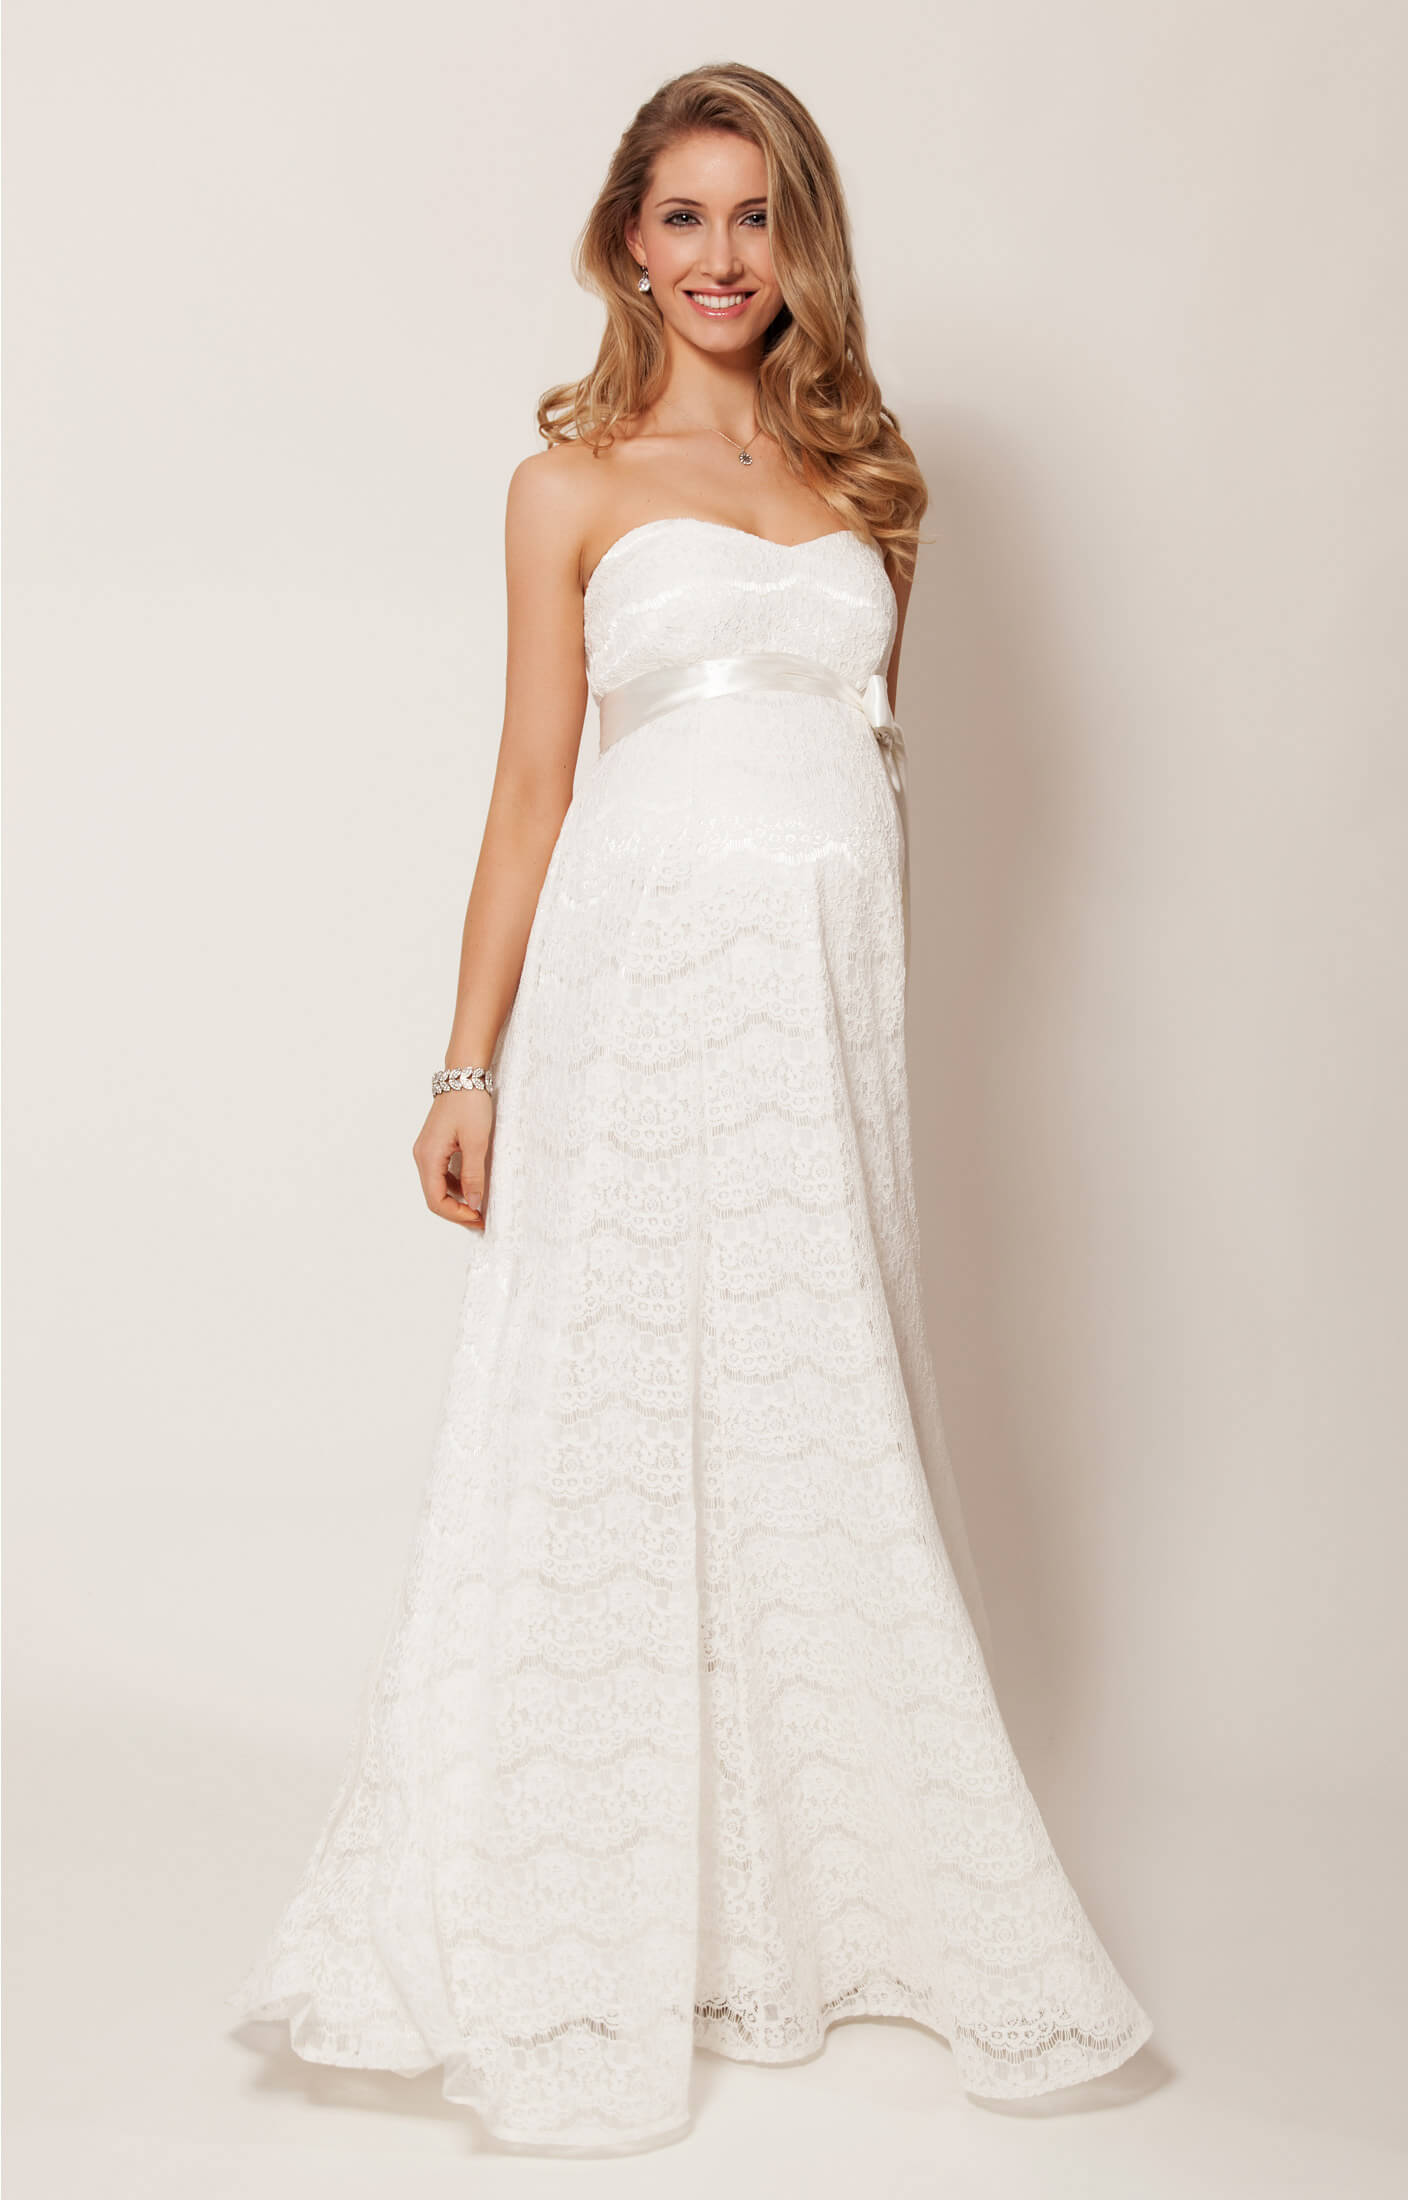 fa9b8a68225a7 Olivia Maternity Wedding Gown (Ivory) - Maternity Wedding Dresses, Evening  Wear and Party Clothes by Tiffany Rose UK